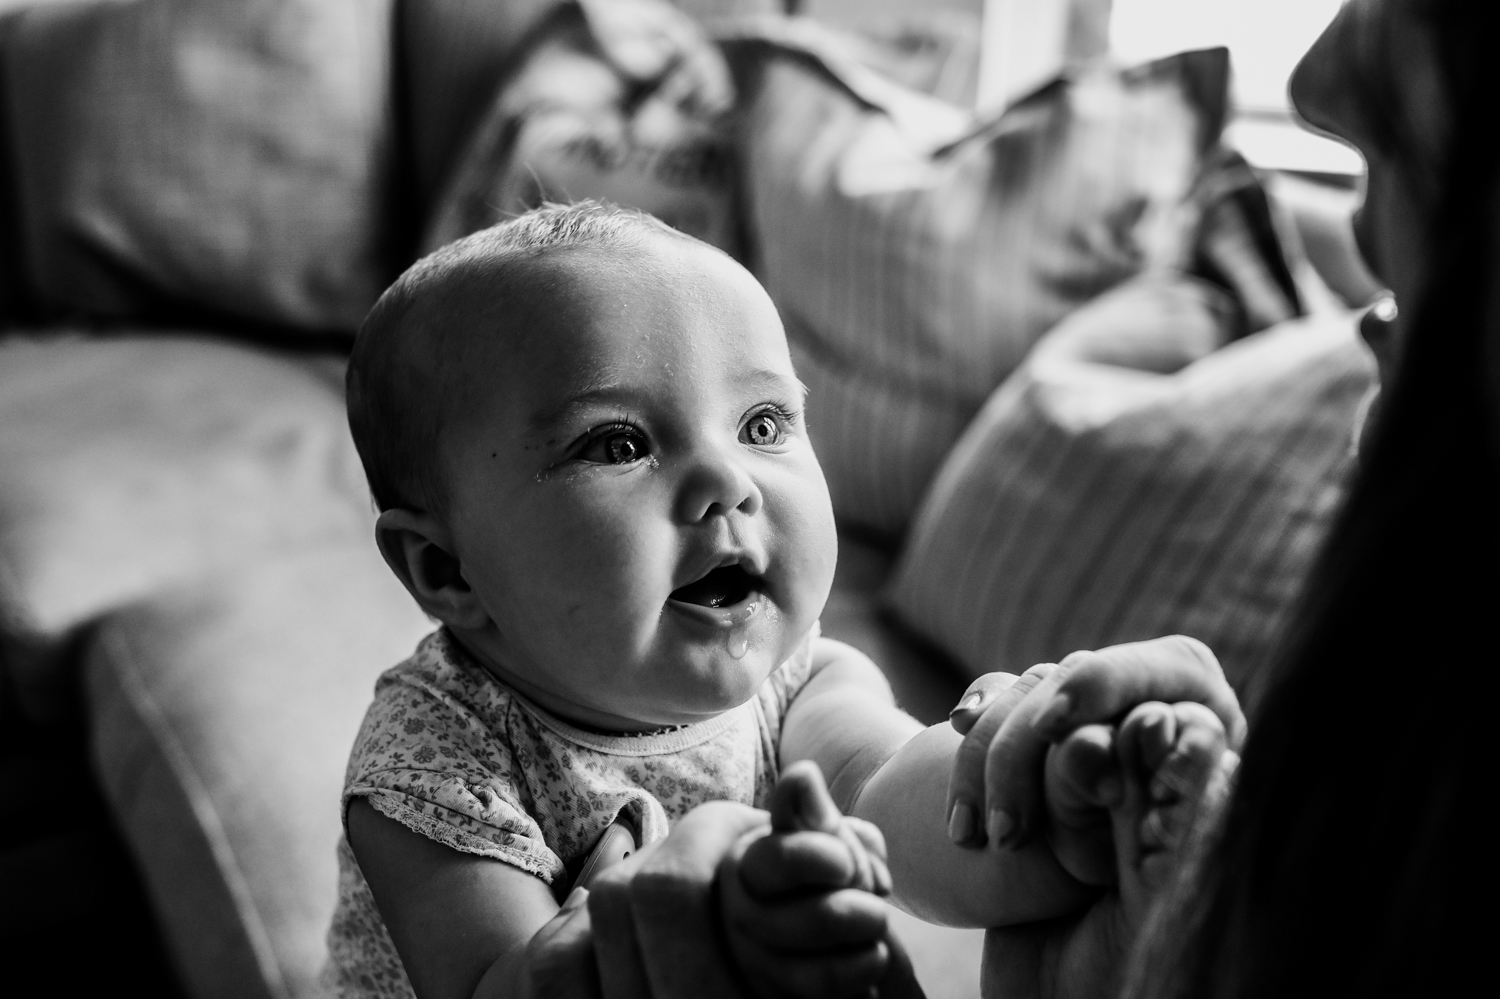 A close up shot of a baby staring at her mother as they hold hands on the sofa during this day in the life photo session in Yeovil, Somerset.